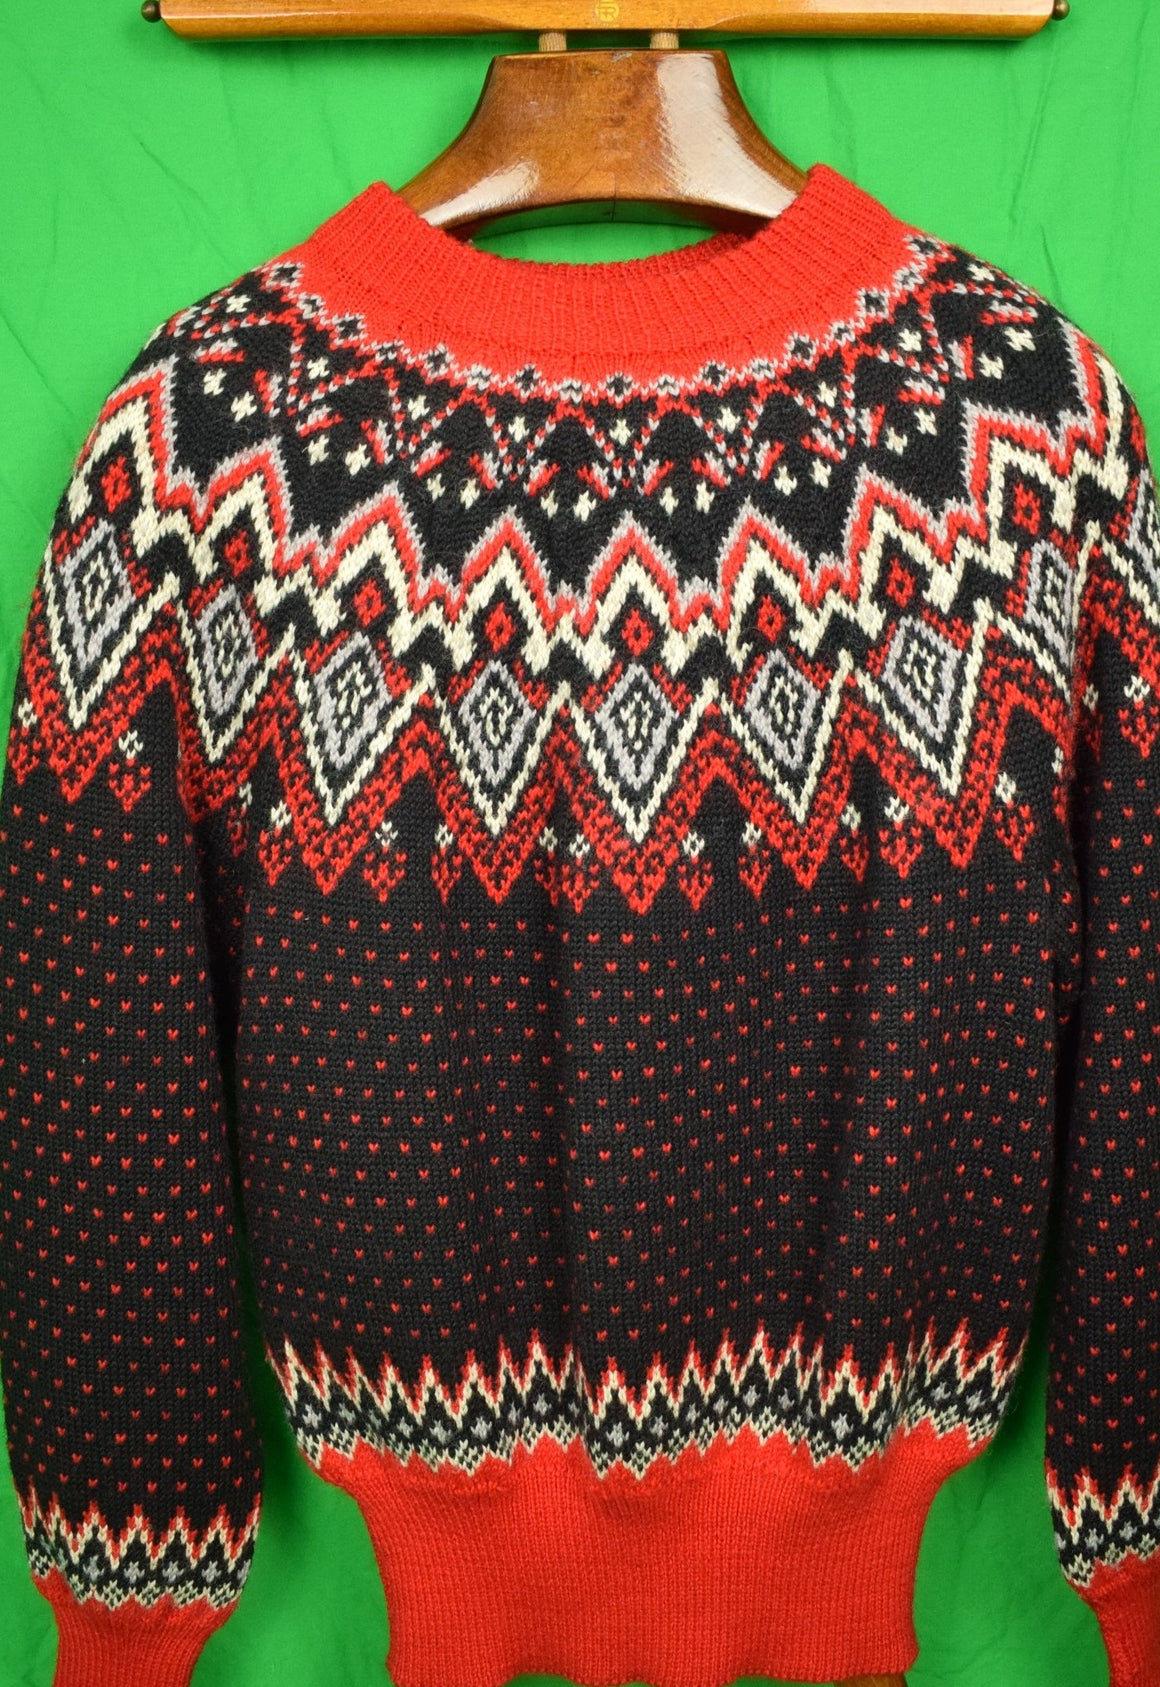 Abercrombie & Fitch Black & Red Danish 'Ski' c60s Sweater